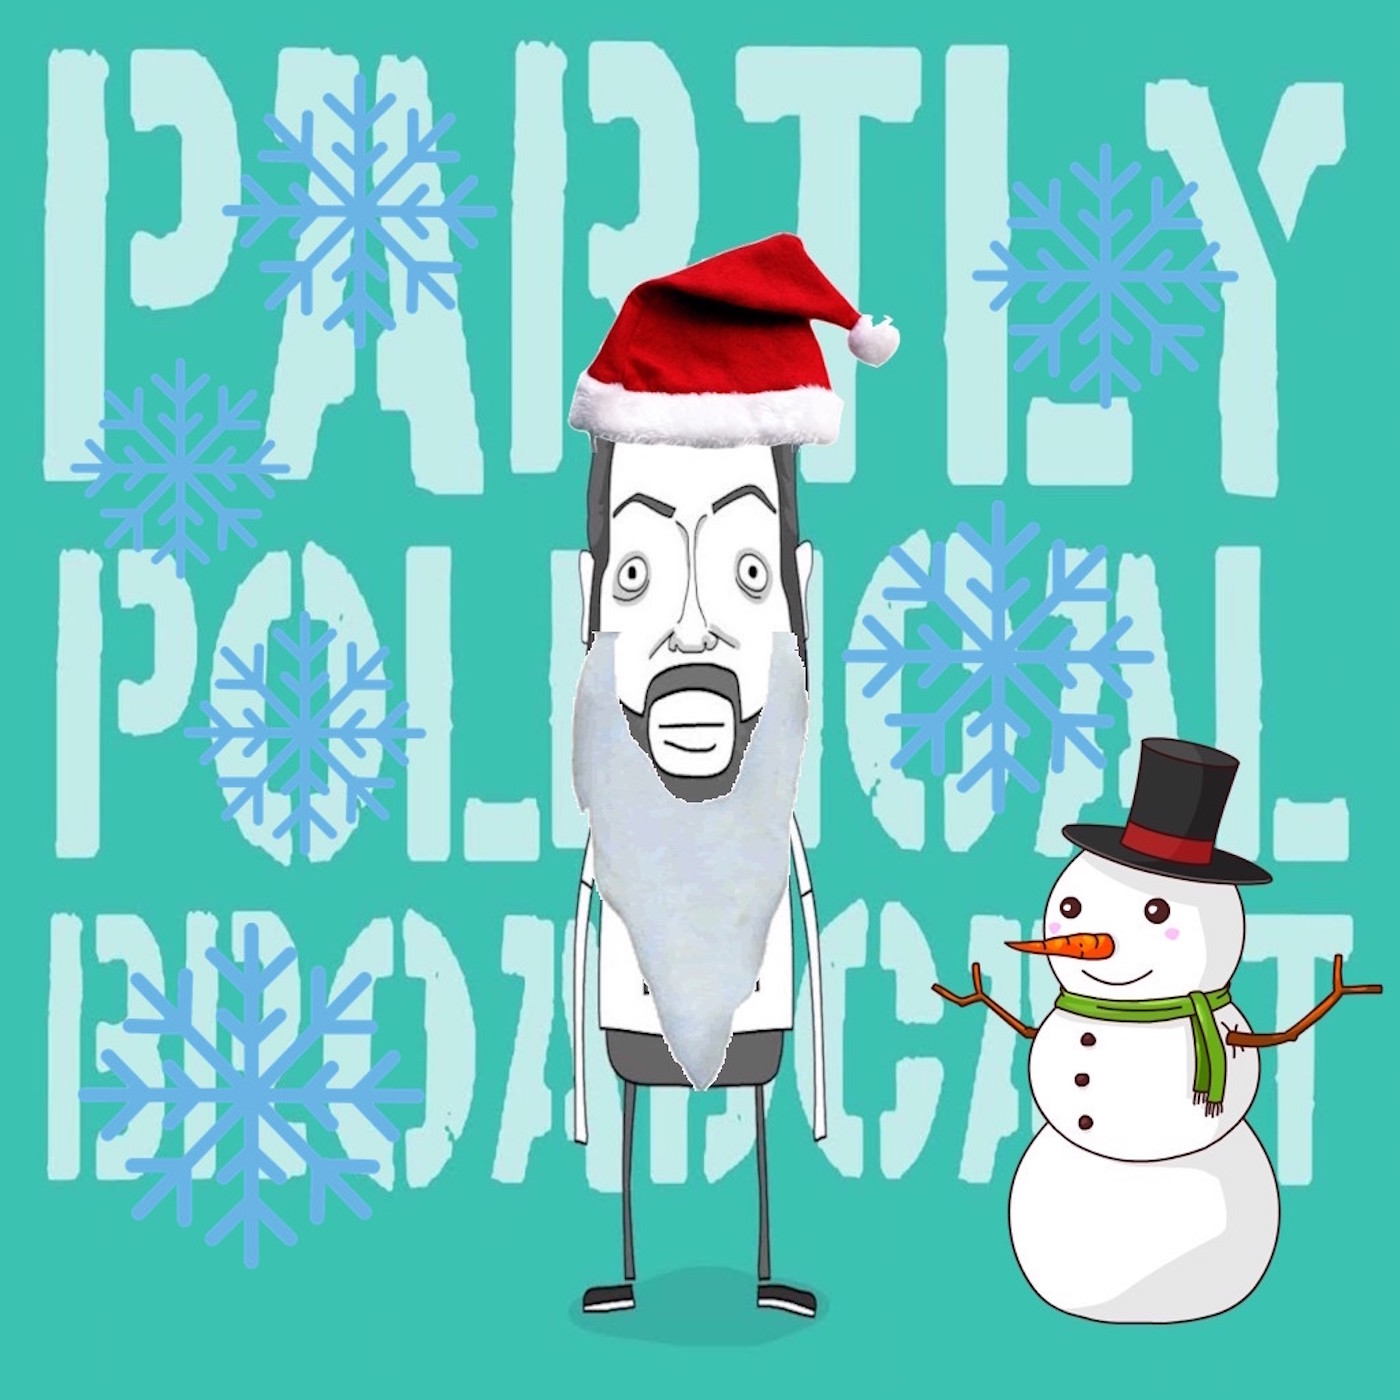 ParPolBroMas2020 – Mutant Christmas Variant and a message from Father Christmas